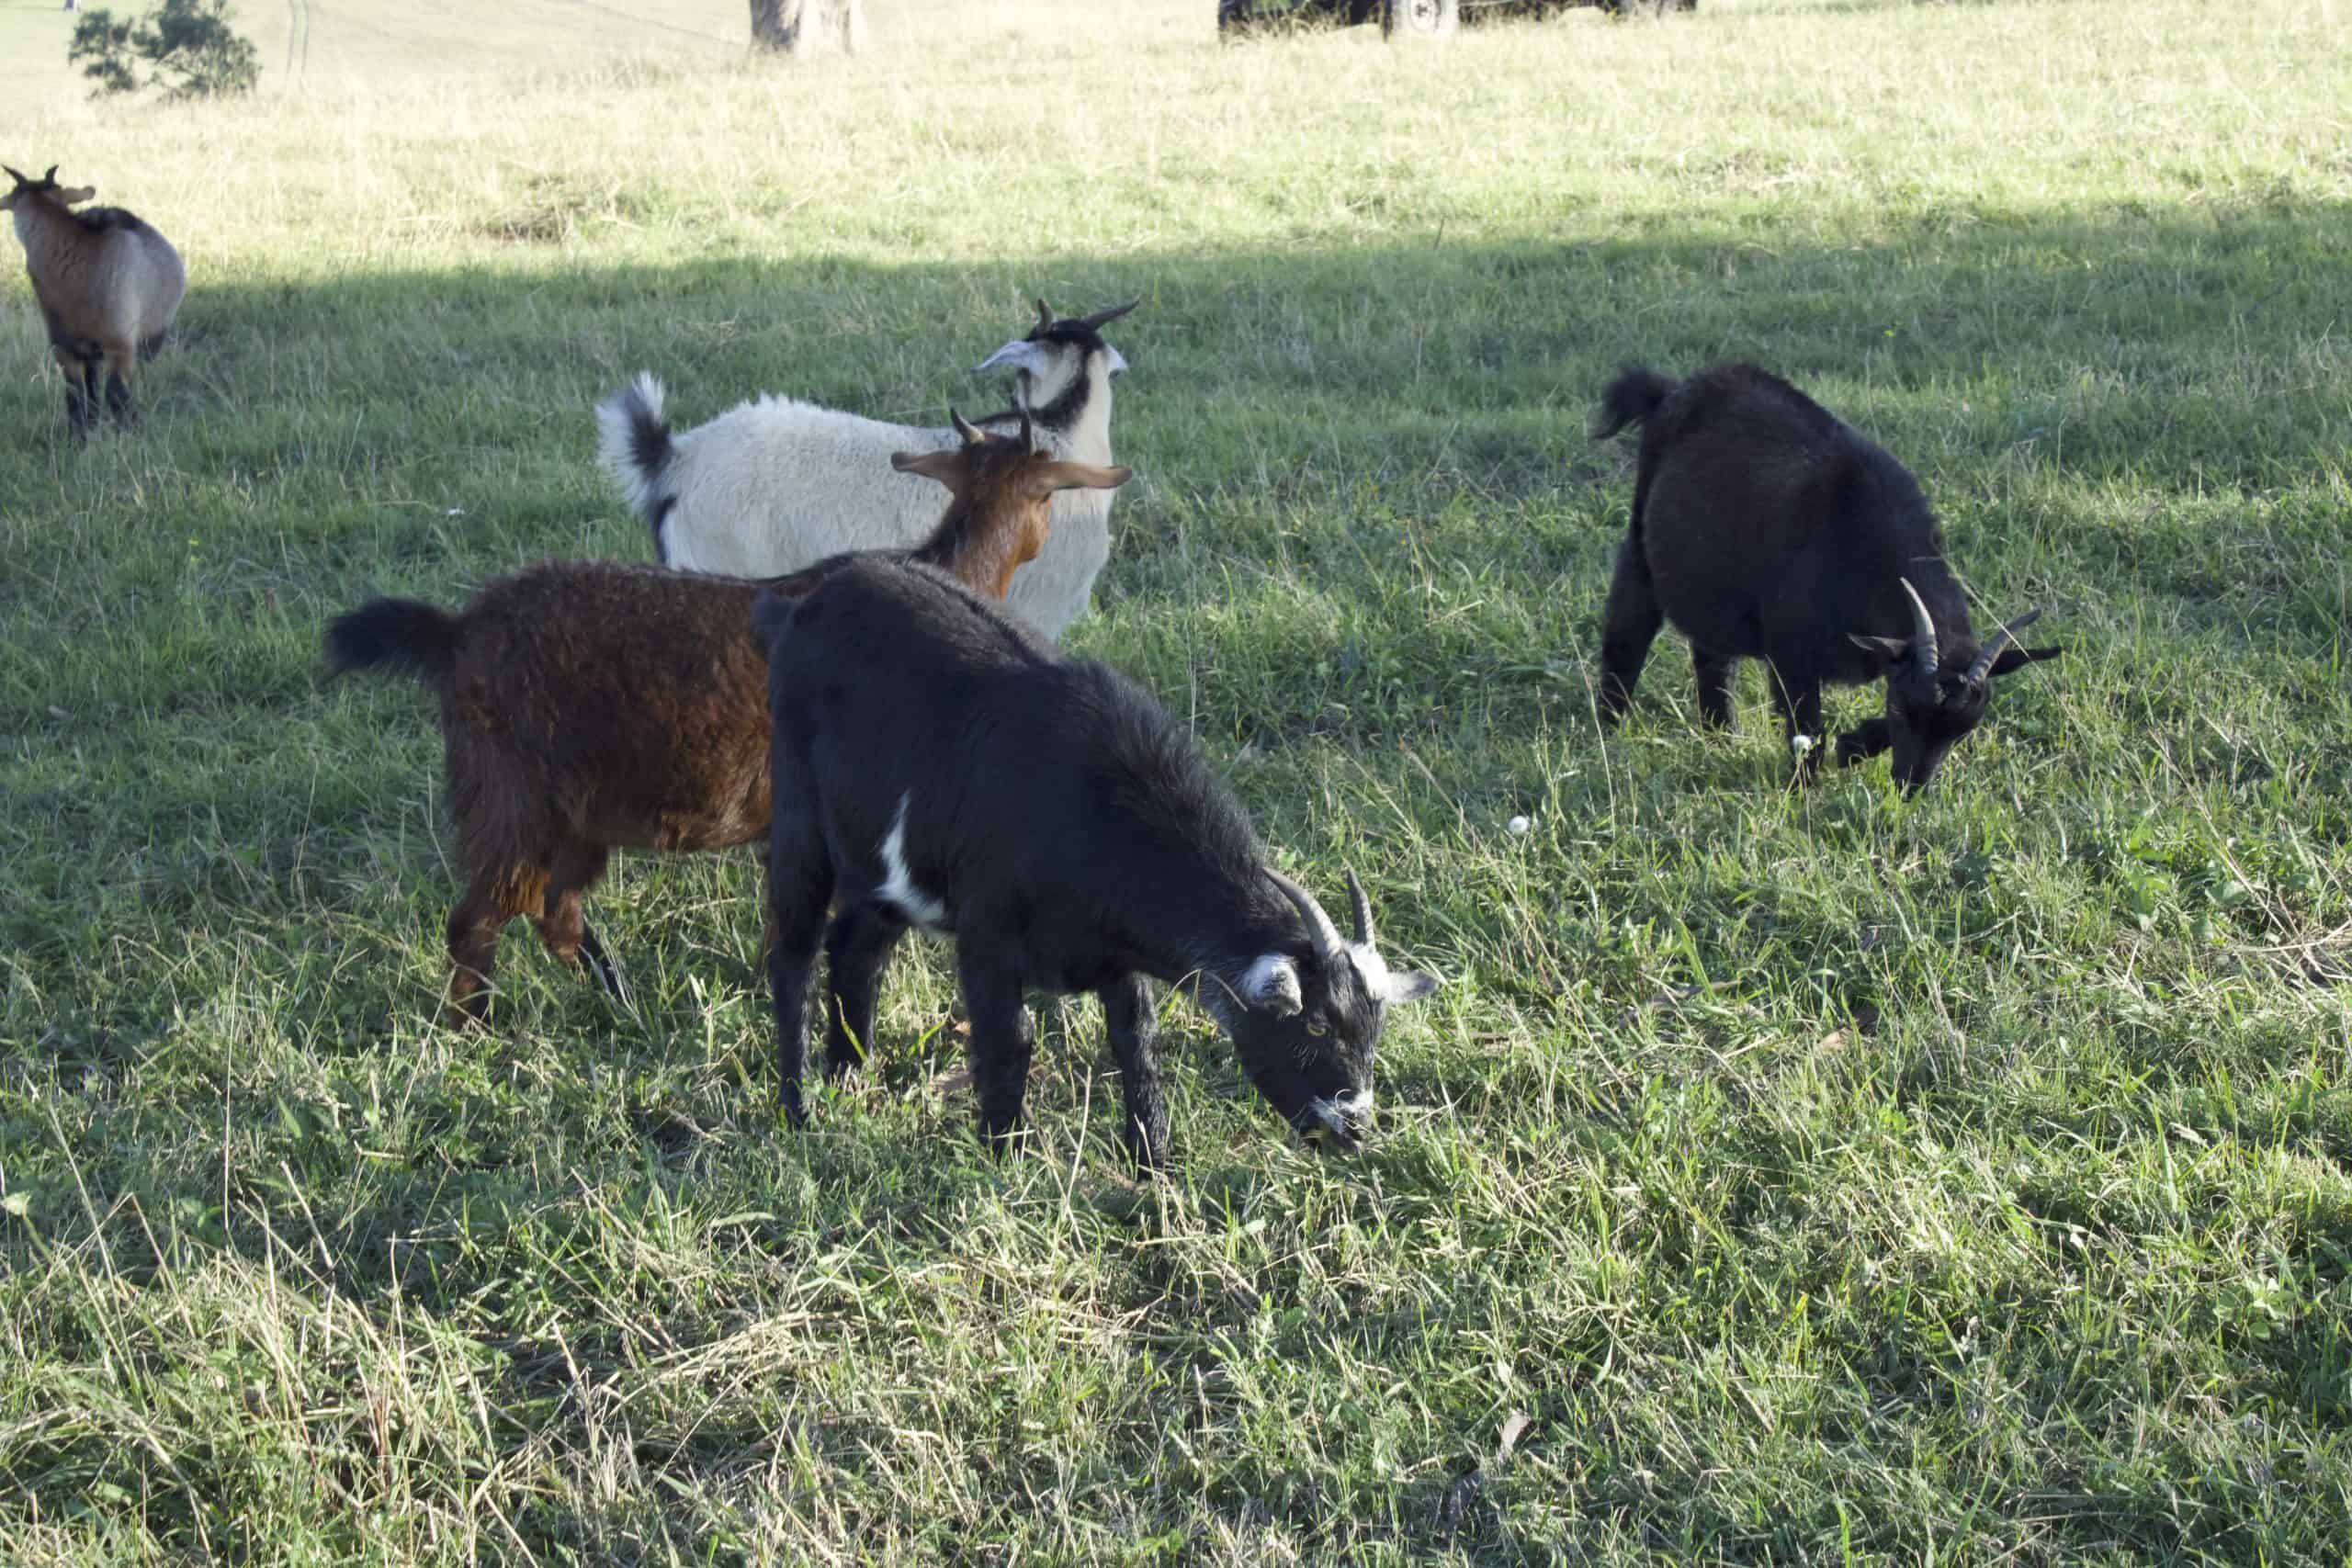 Goat Meat Farm - small herd